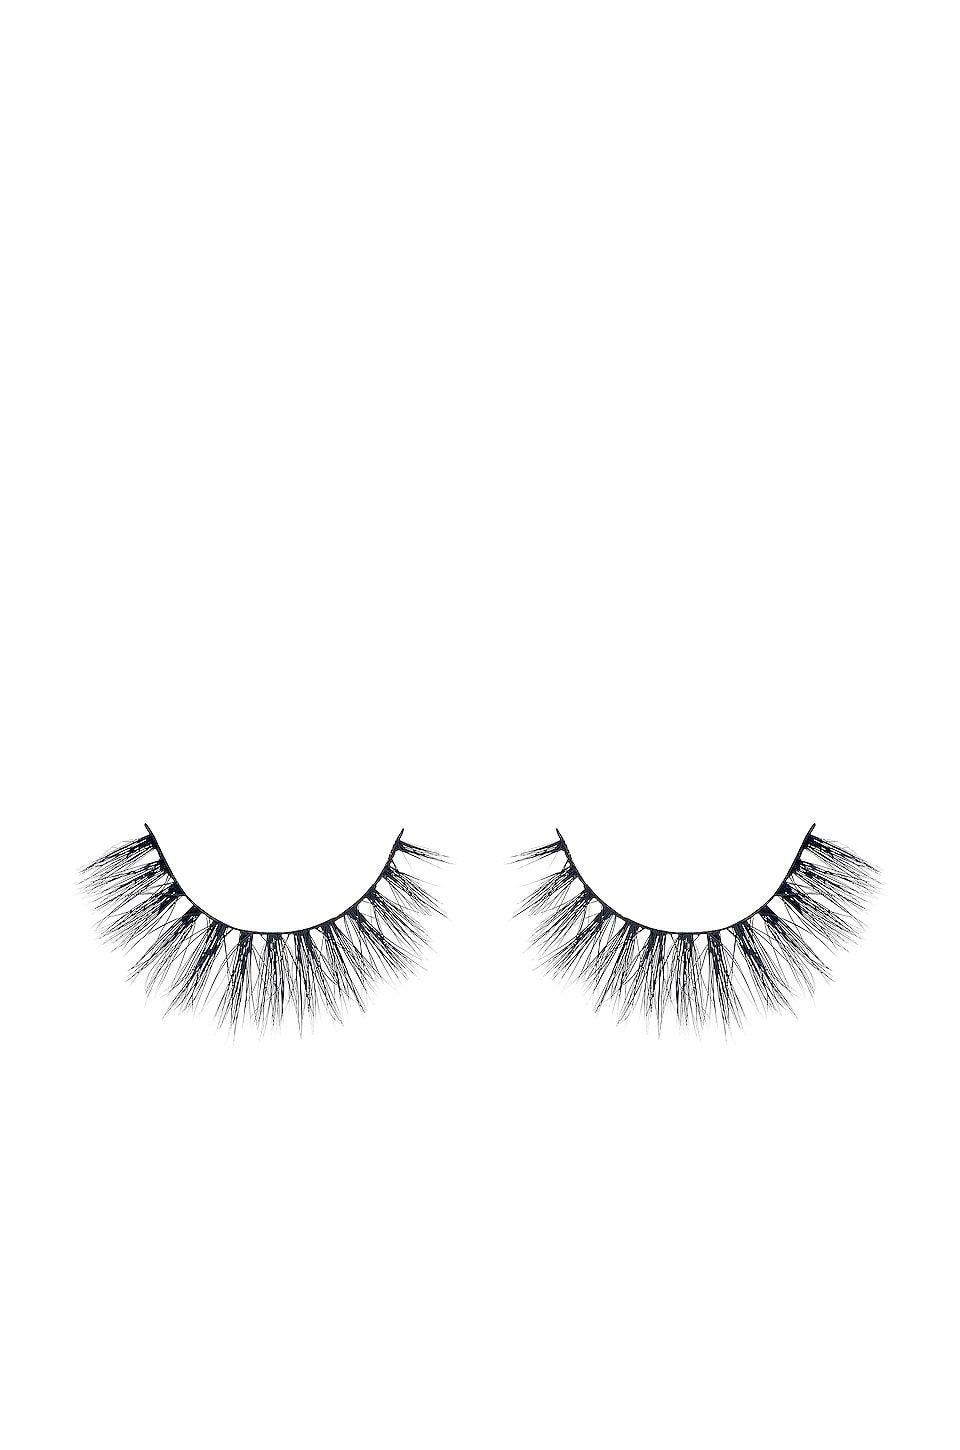 Artemes Lash Sweet Jungle Mink Eyelashes in Black